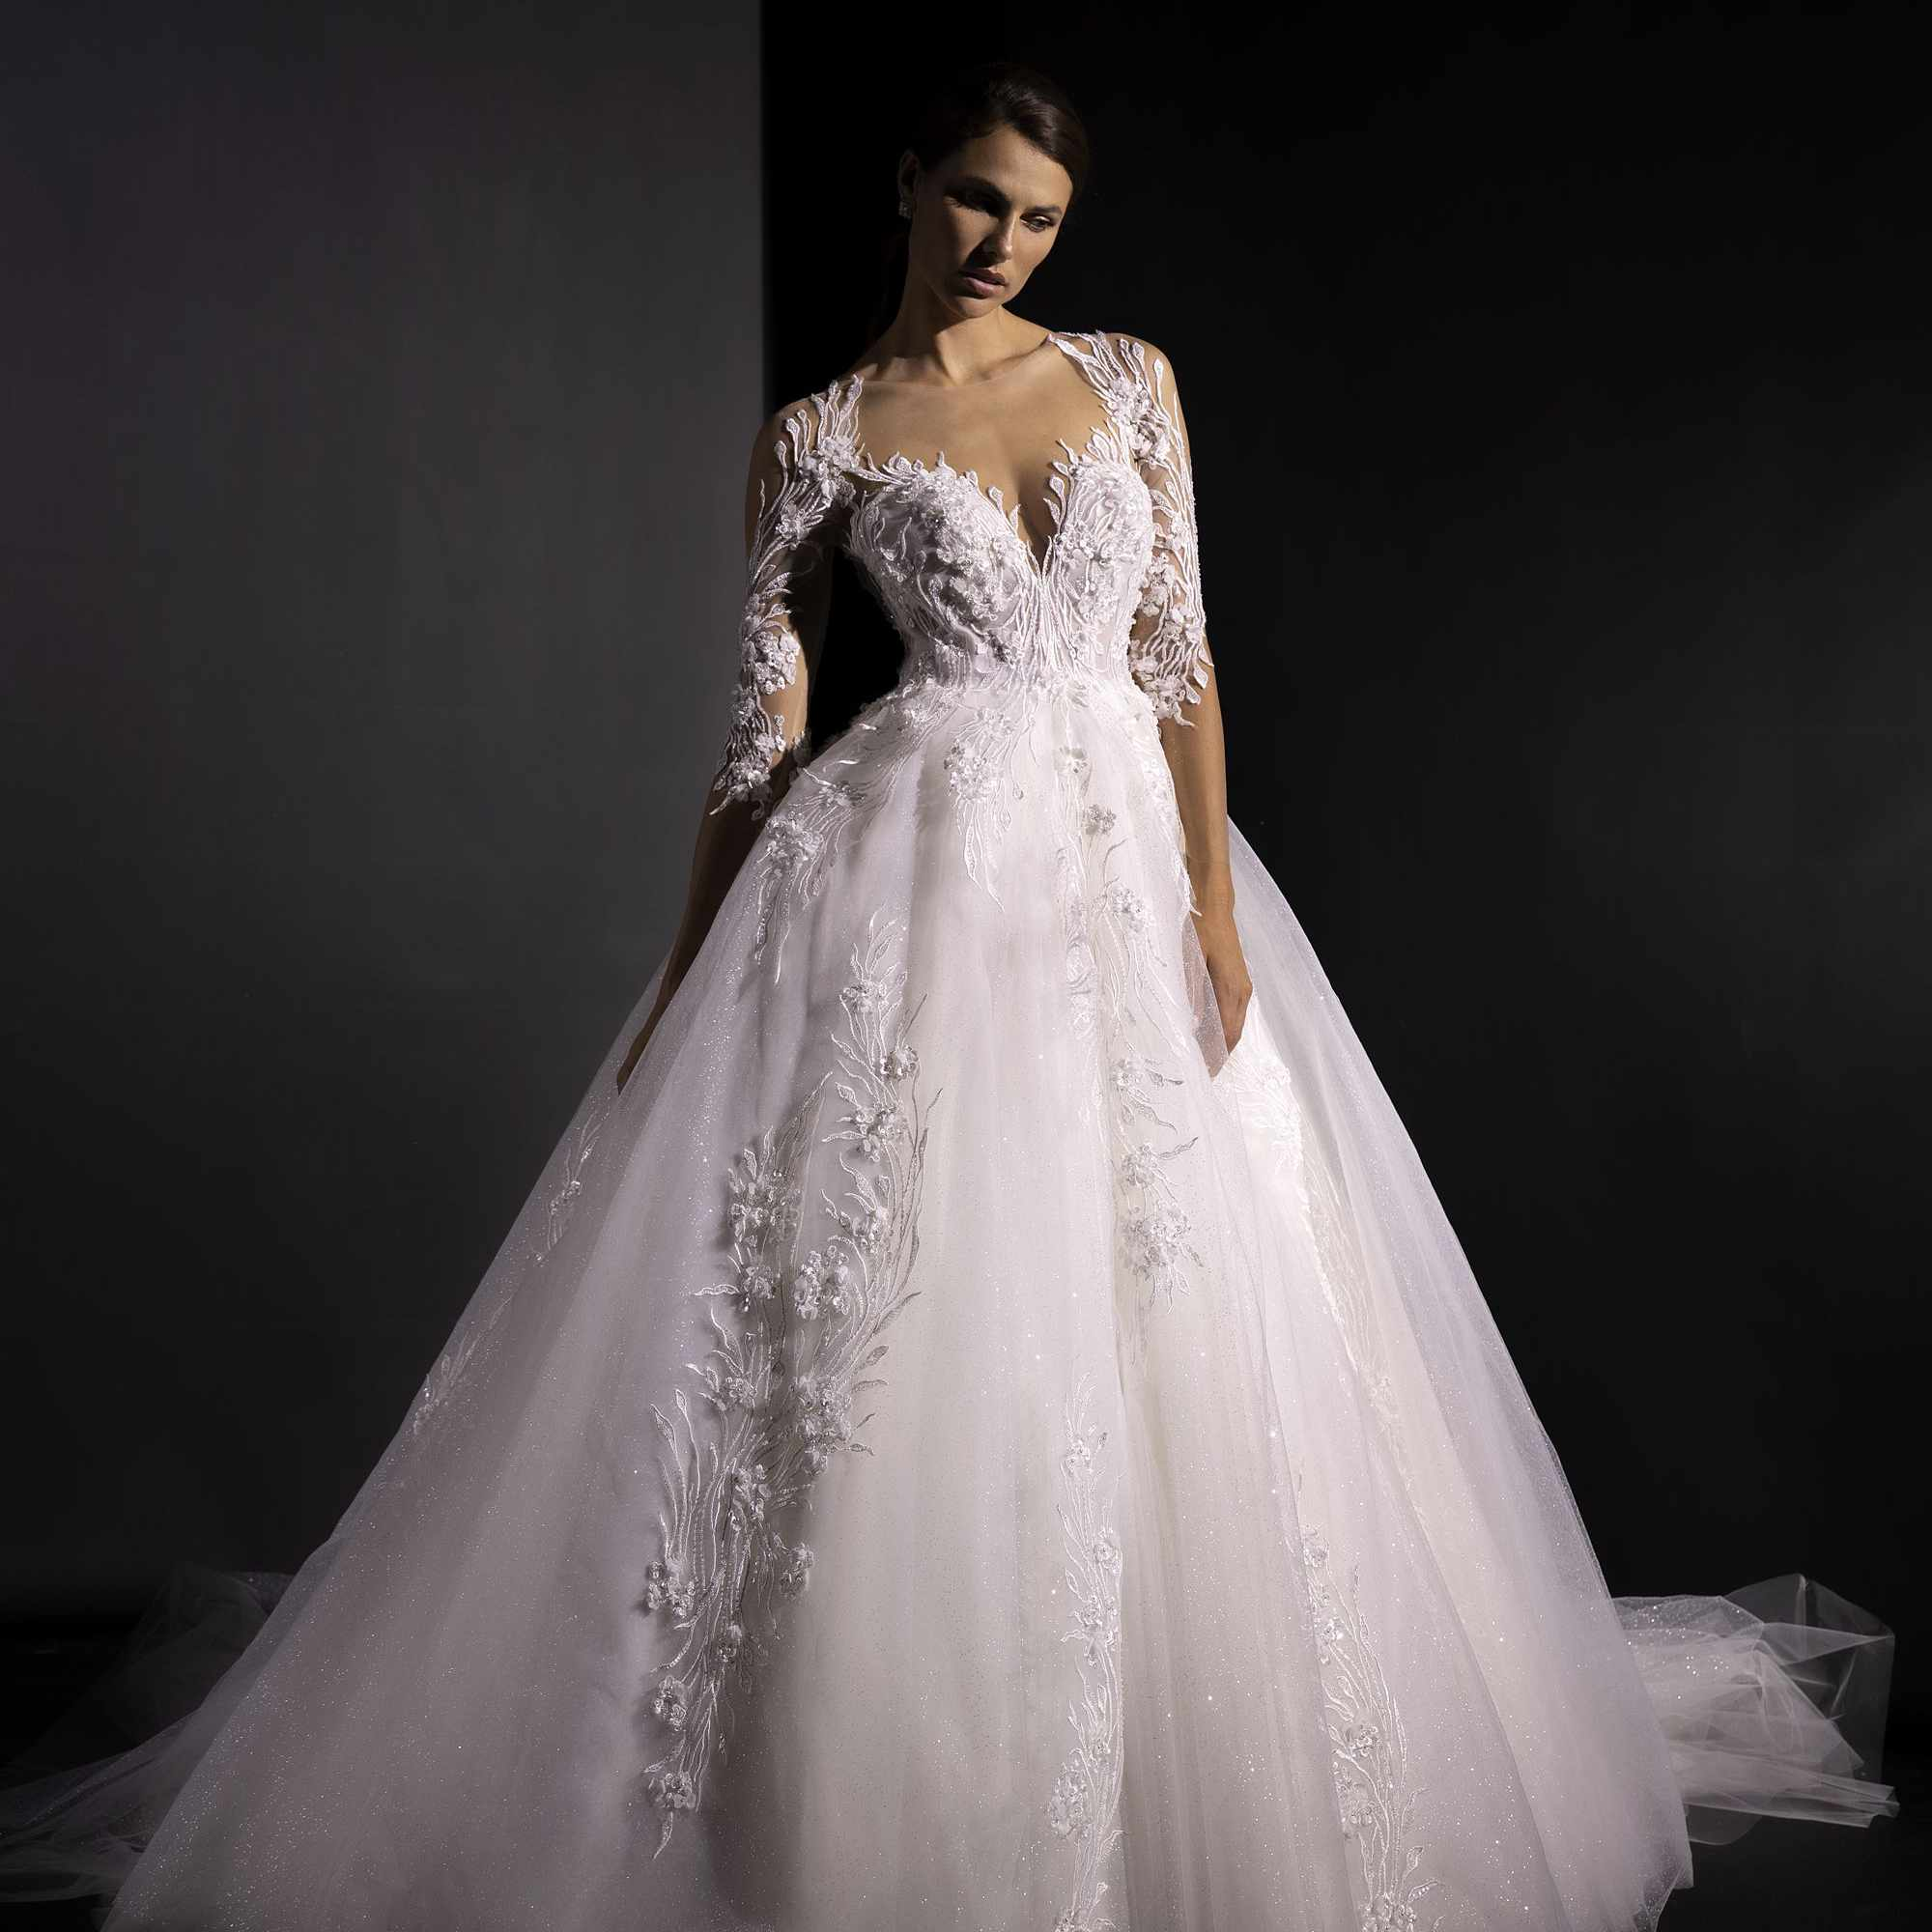 Model in three-quarter-sleeve ballgown with a tulle skirt, deep sweetheart bodice, and 3D floral embroidery